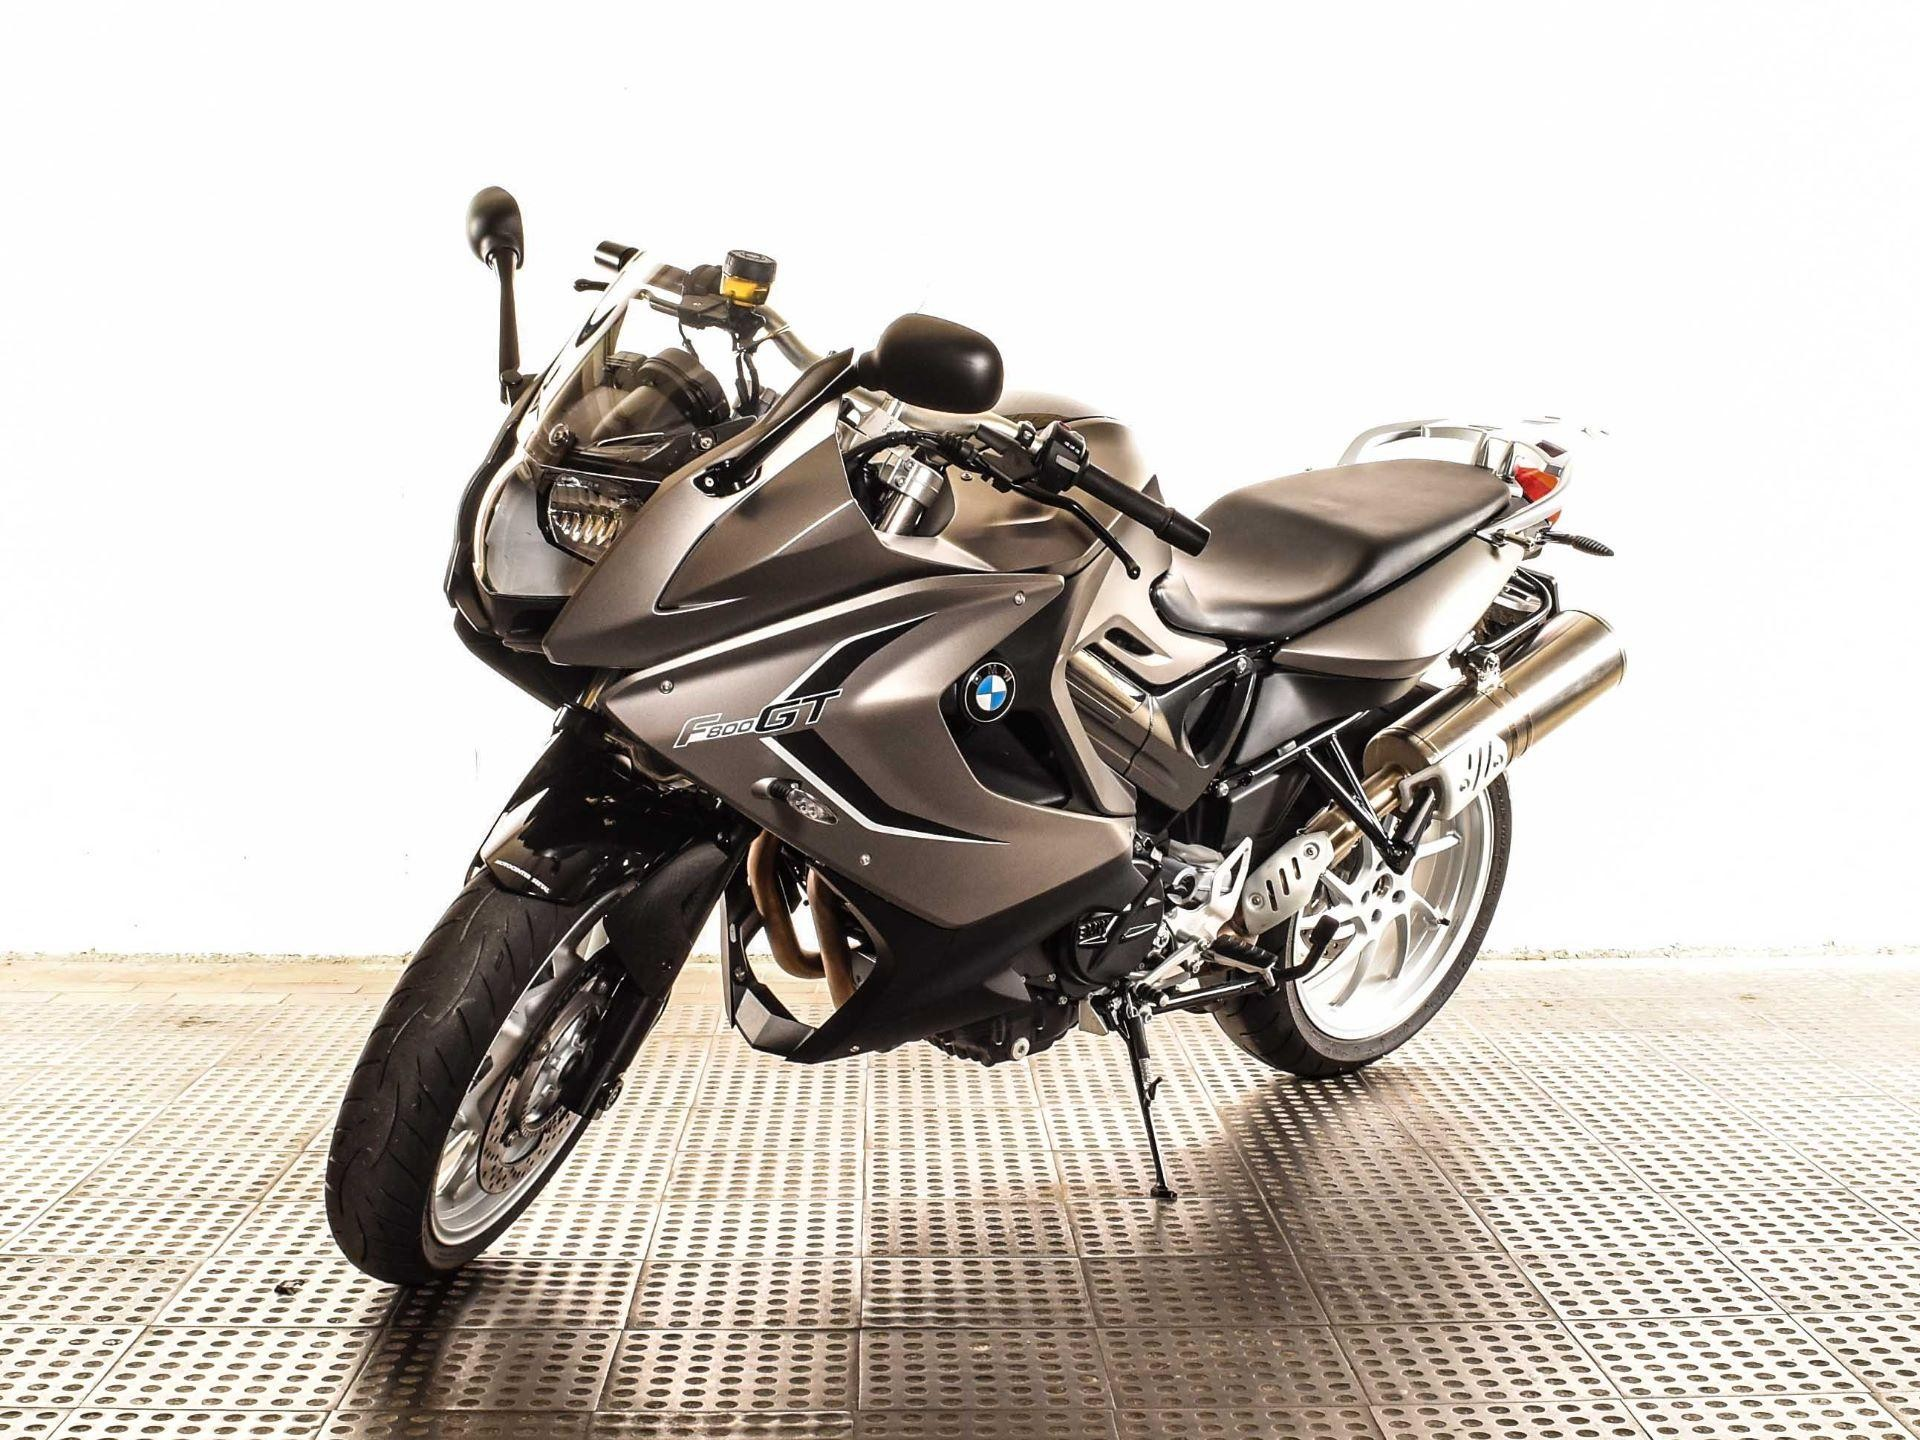 bmw f 800 gt occasion motorrad occasion kaufen bmw f 800. Black Bedroom Furniture Sets. Home Design Ideas